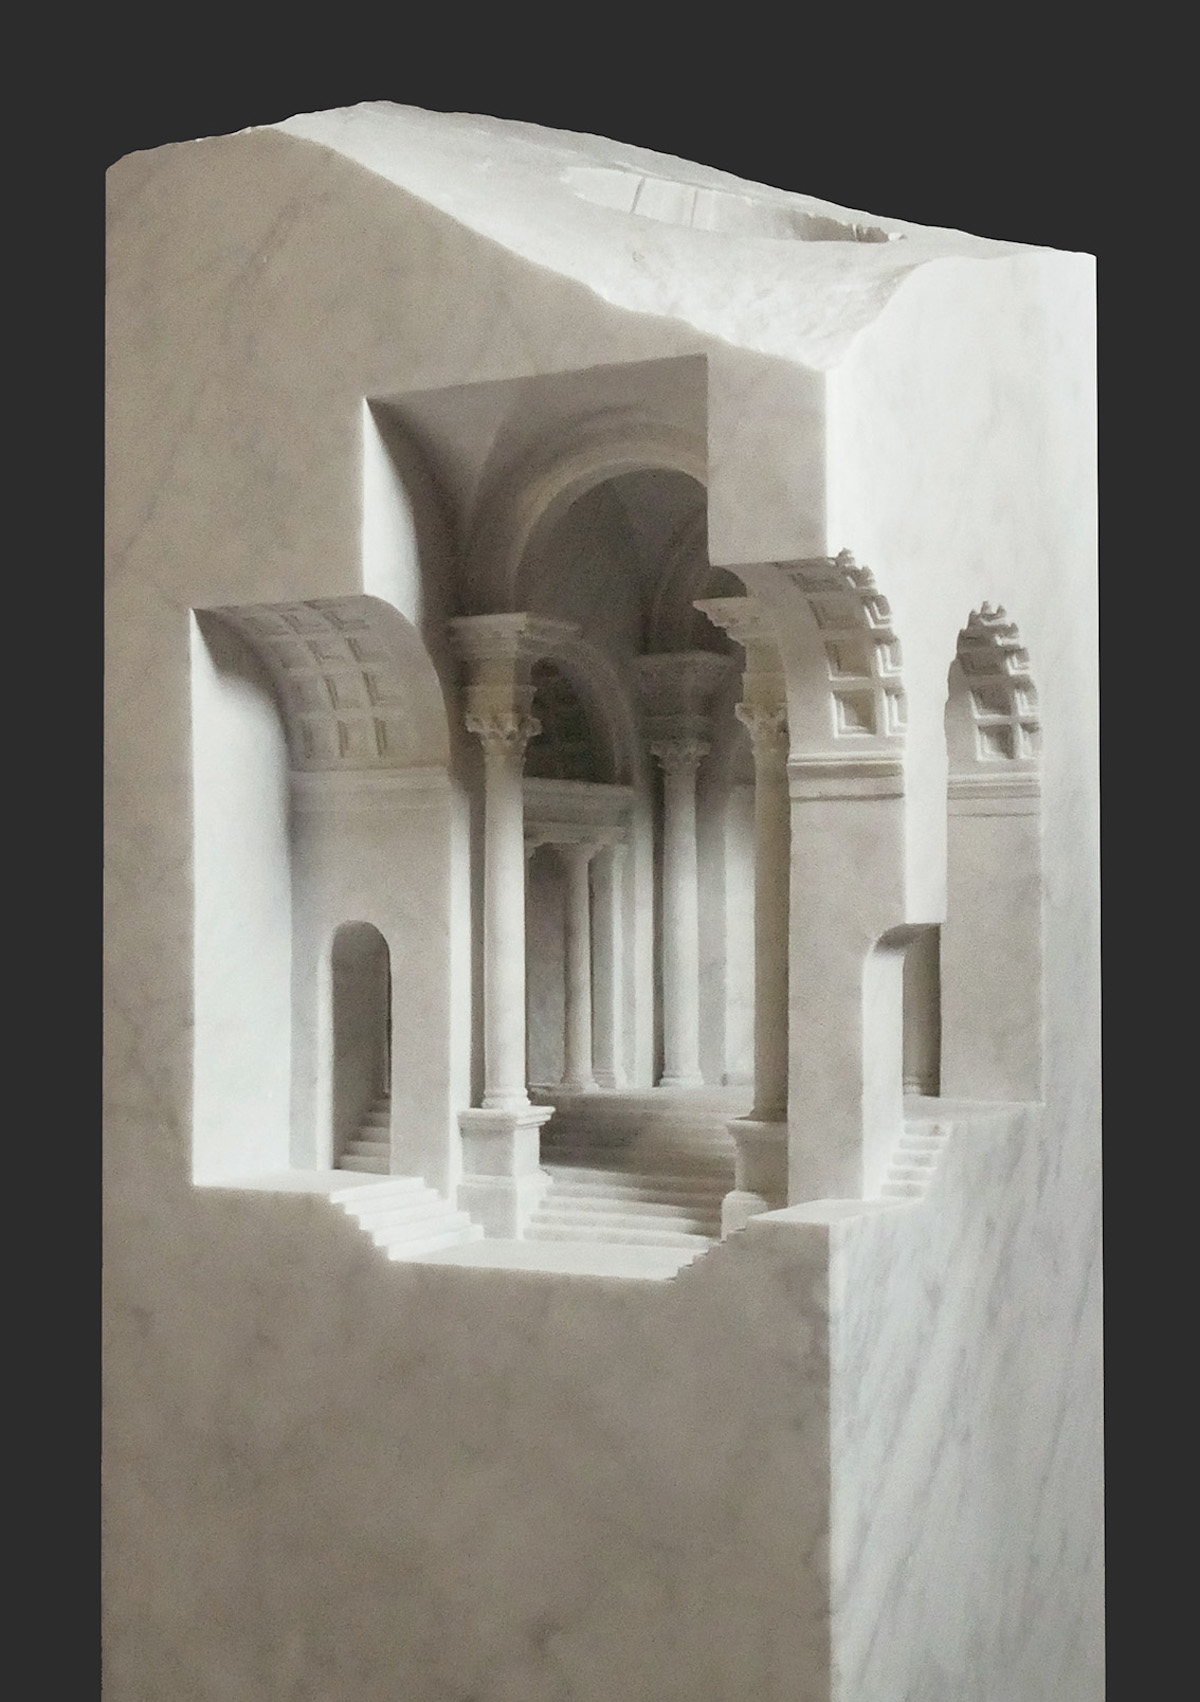 Architectural Carving by Matthew Simonds